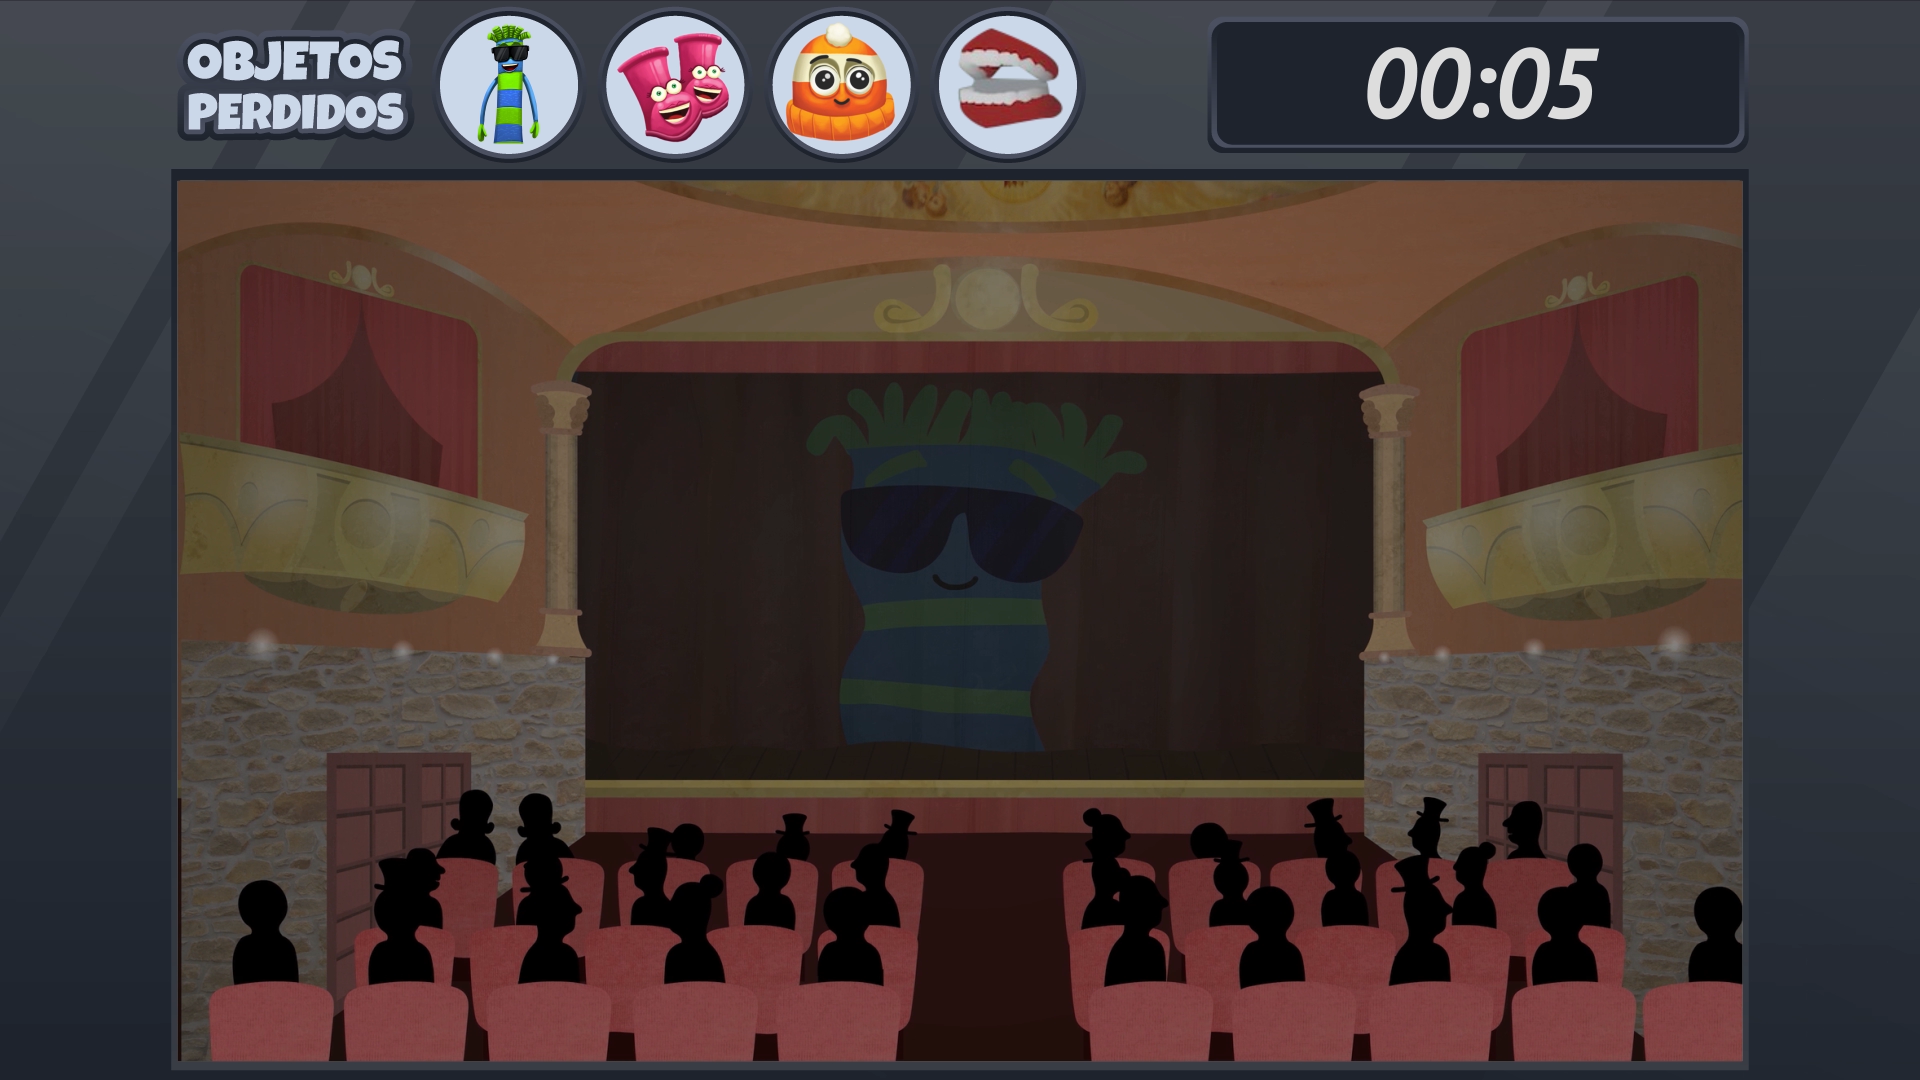 Screenshot of the theater with lost objects above